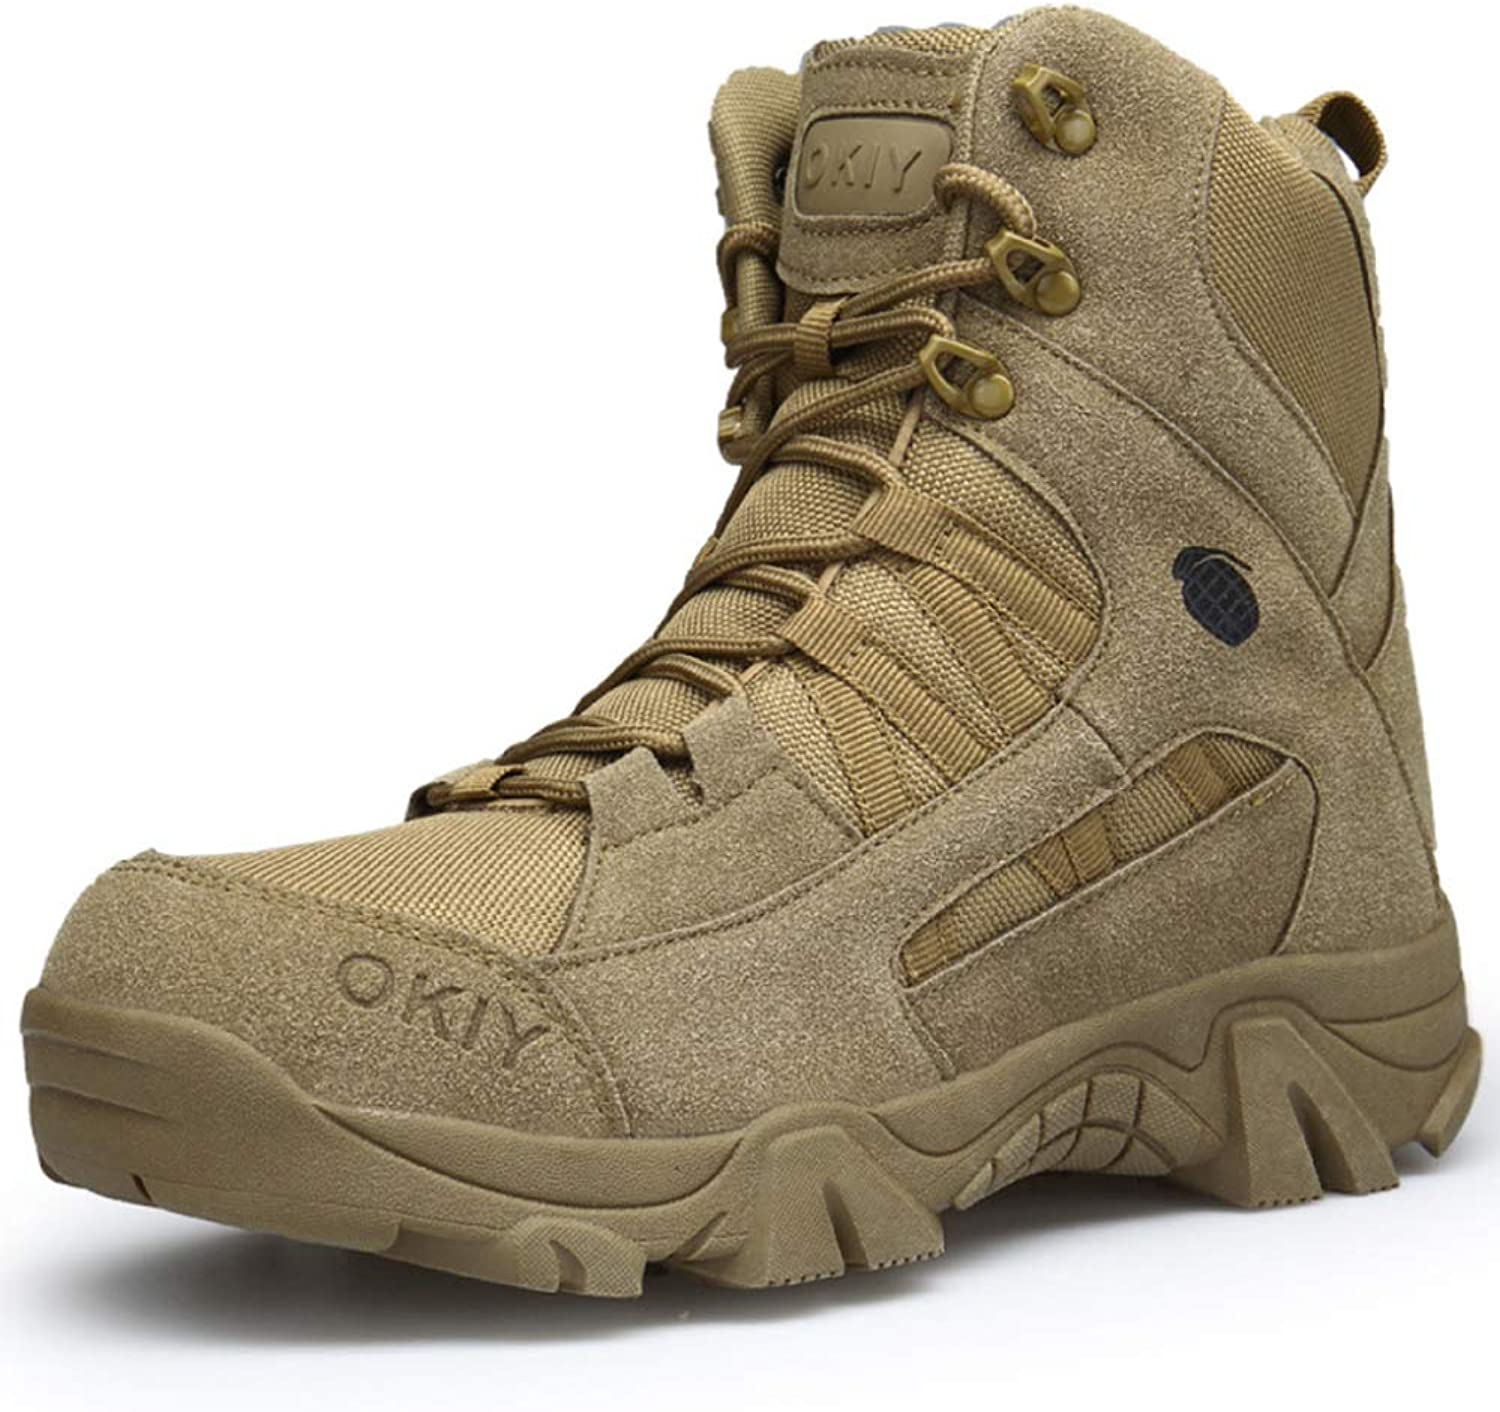 Mens Martin Boot Outdoor Desert Army Combat Boots Comfortable Breathable Military Armed Tactics shoes Police Patrol Footwear